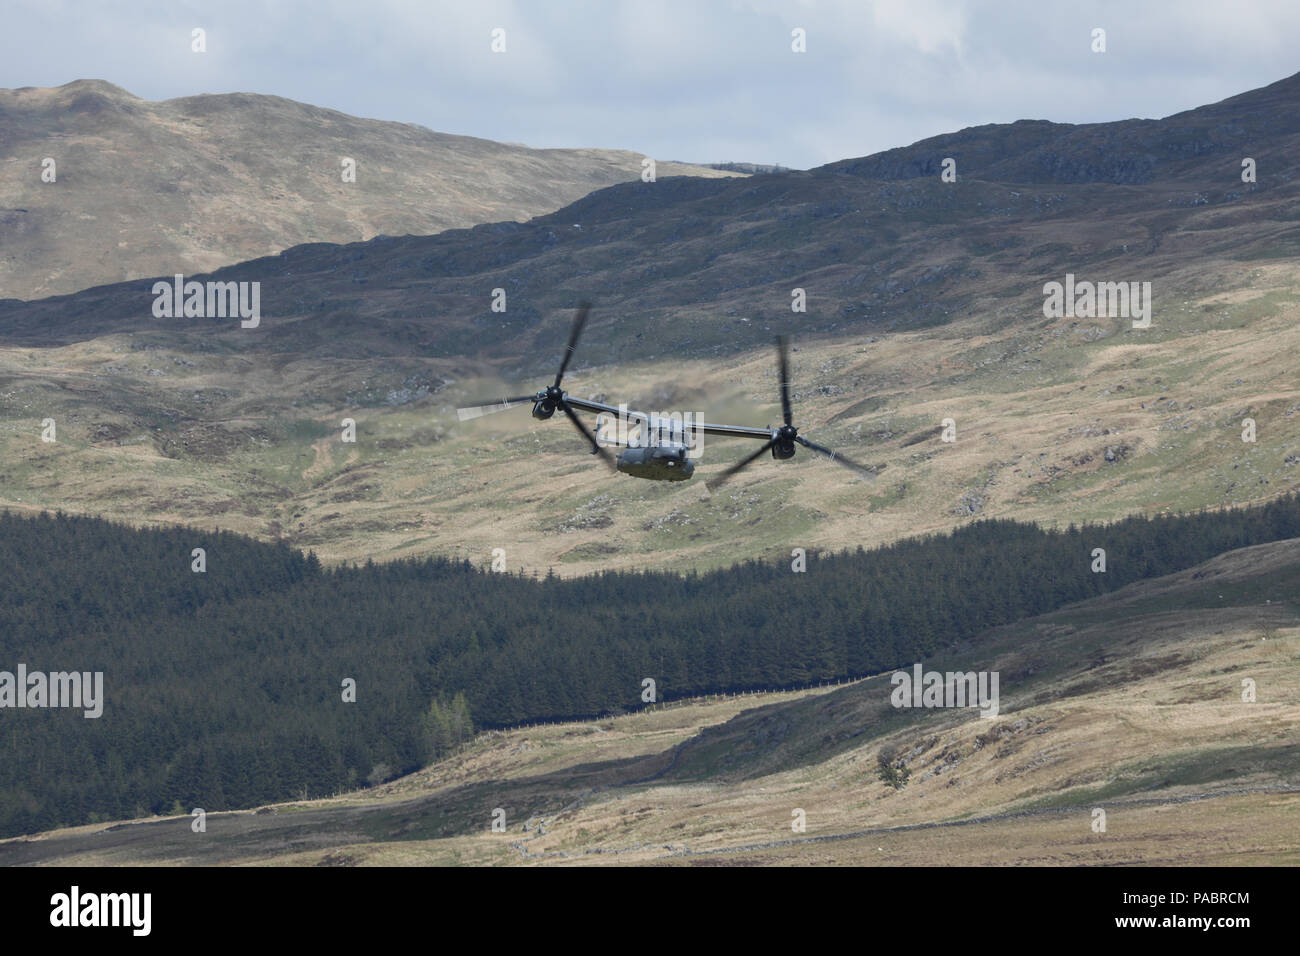 A US Air Force CV-22 Osprey tiltrotor aircraft seen on a low-level flight in the 'Mach Loop' training area, west Wales, United Kingdom. - Stock Image